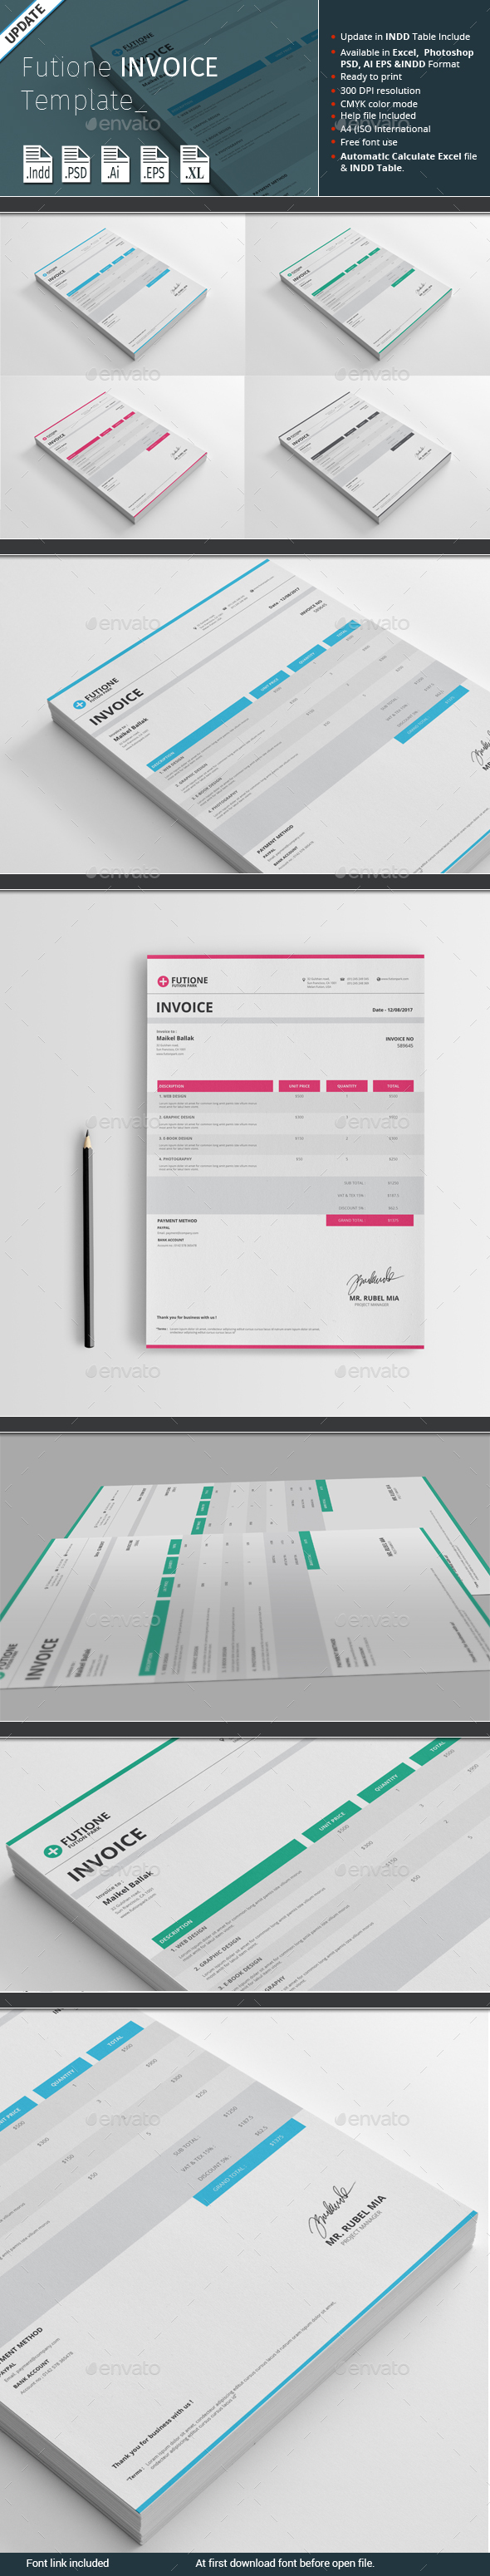 Futione Invoice Template - Proposals & Invoices Stationery